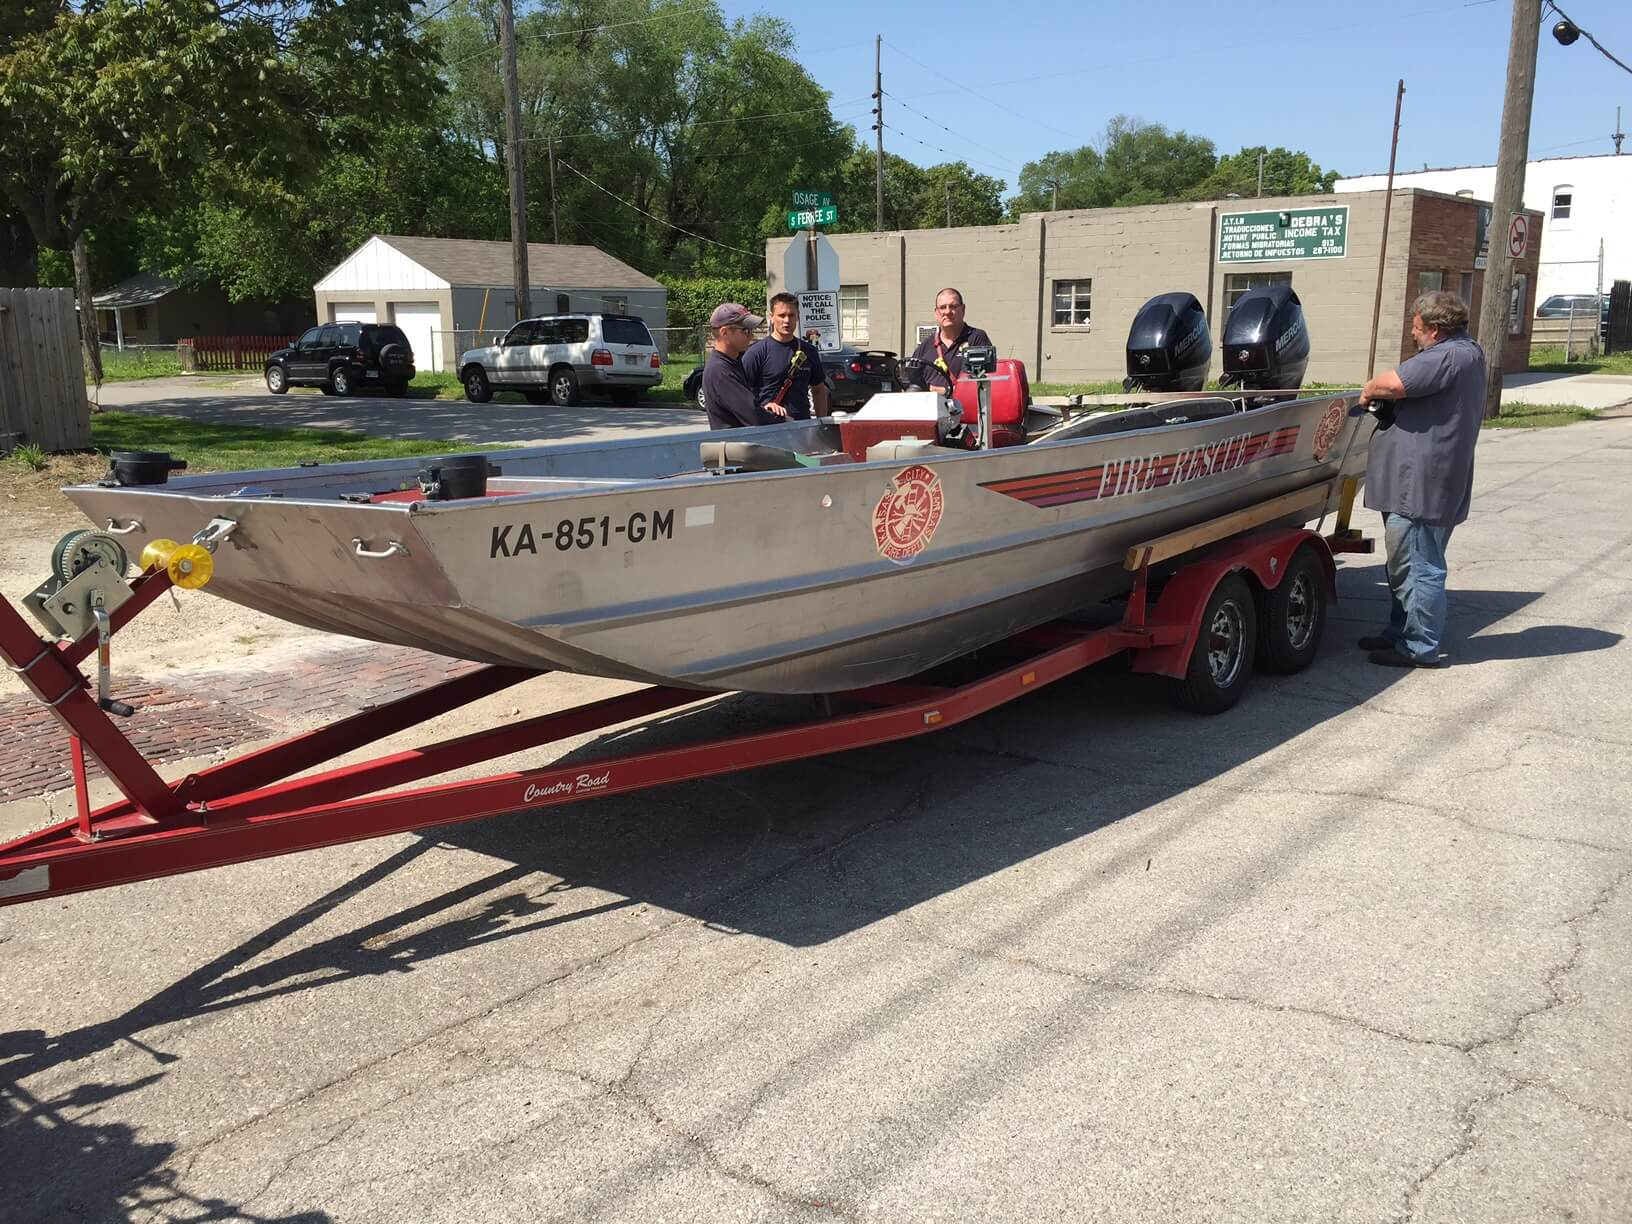 Kansas City Fire Department Rescue Boat serviced at US Boatworks